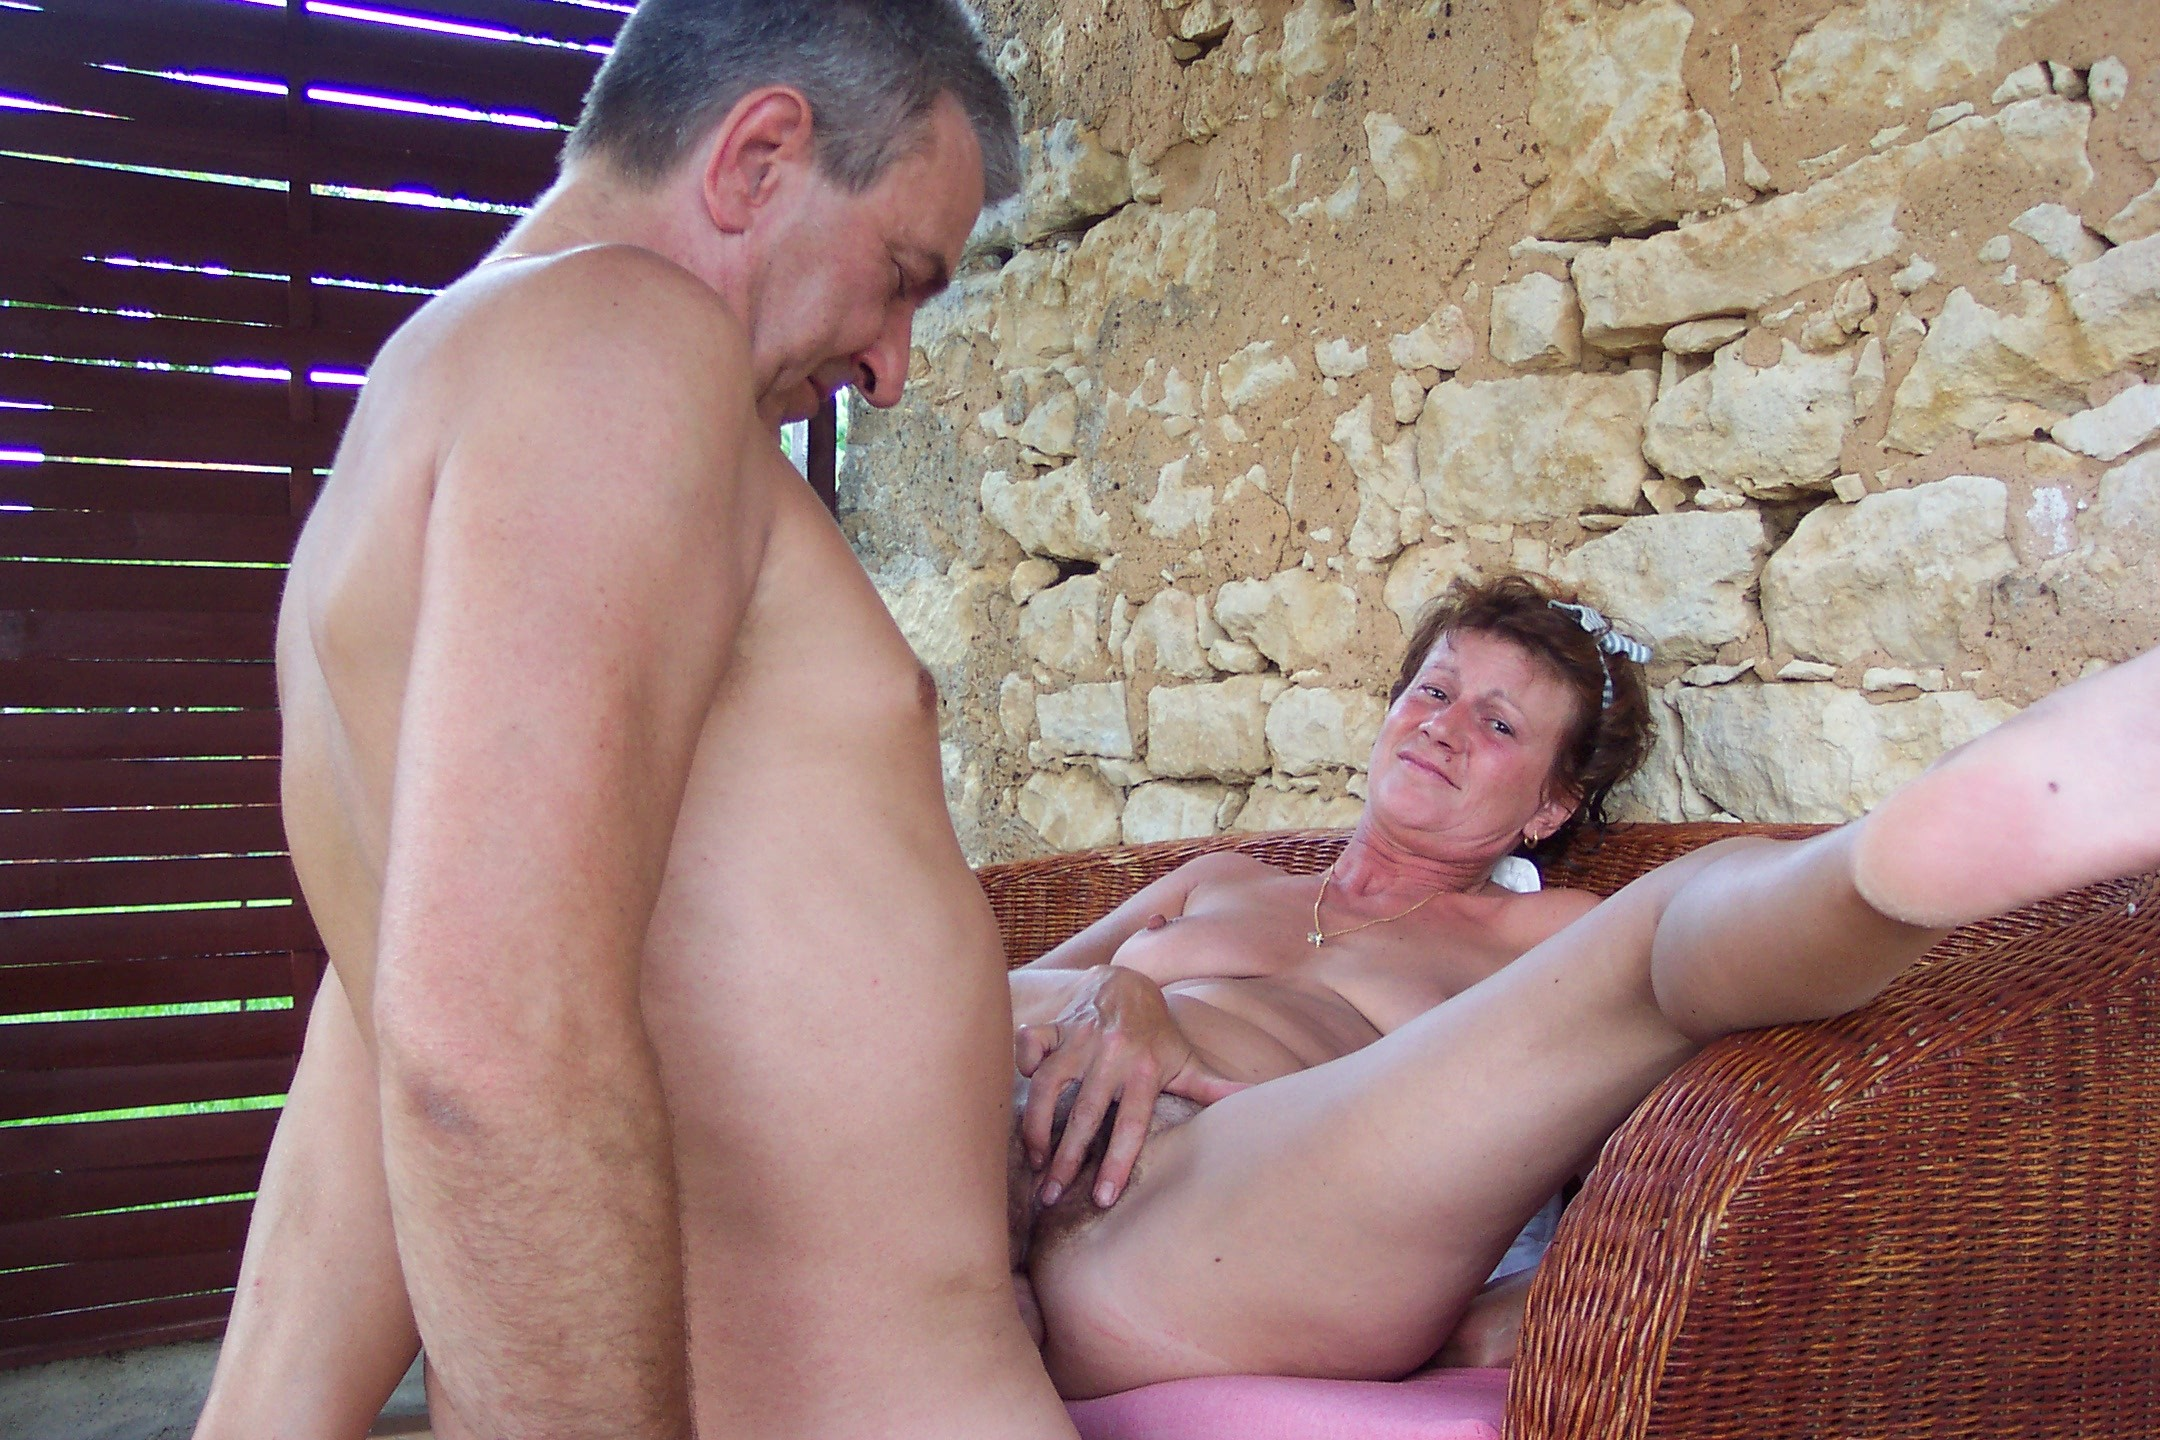 Mature people having sex